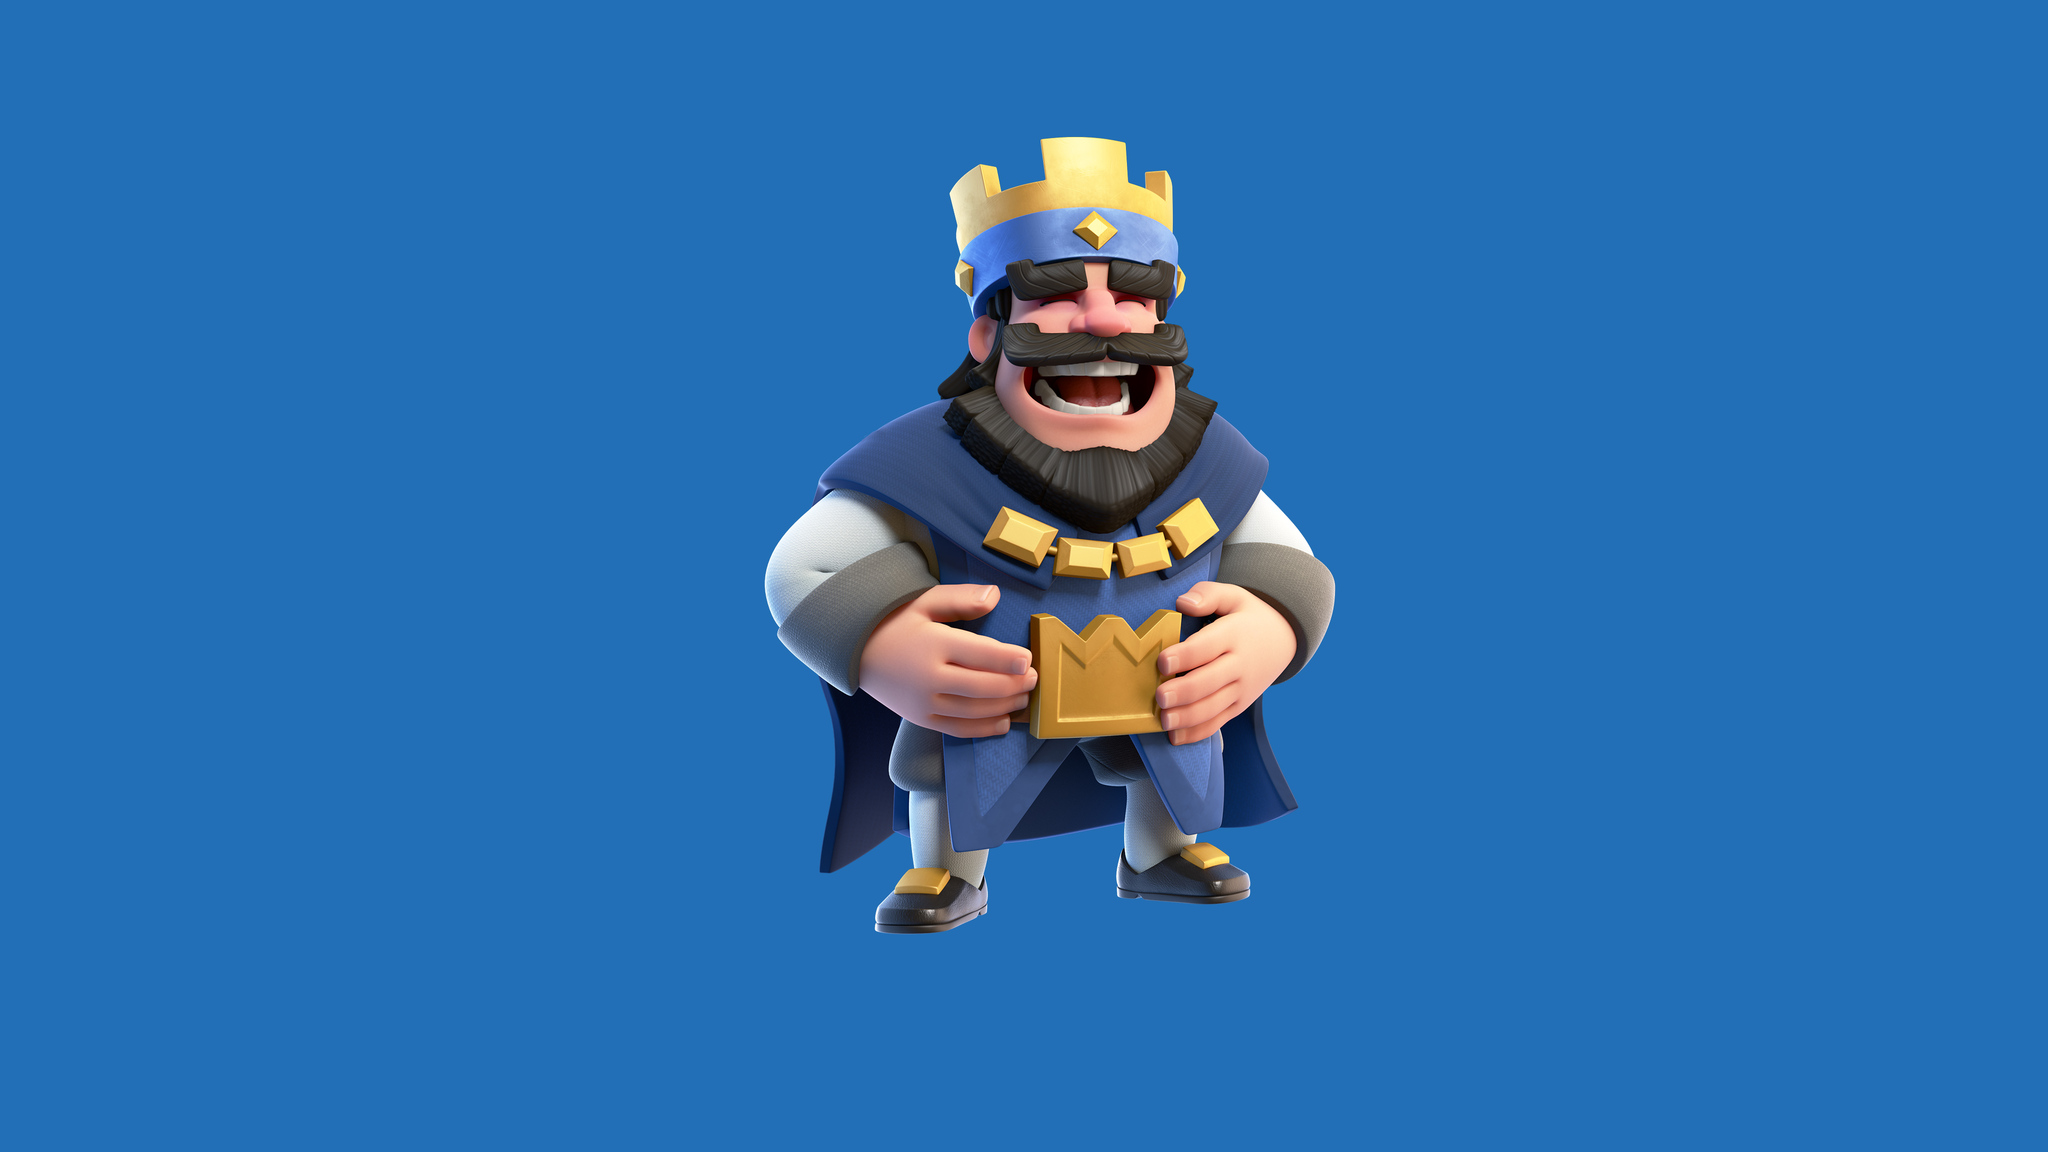 2048 ultra funny animals - 2048x1152 Clash Royale Blue King Hd 4k Wallpapers In